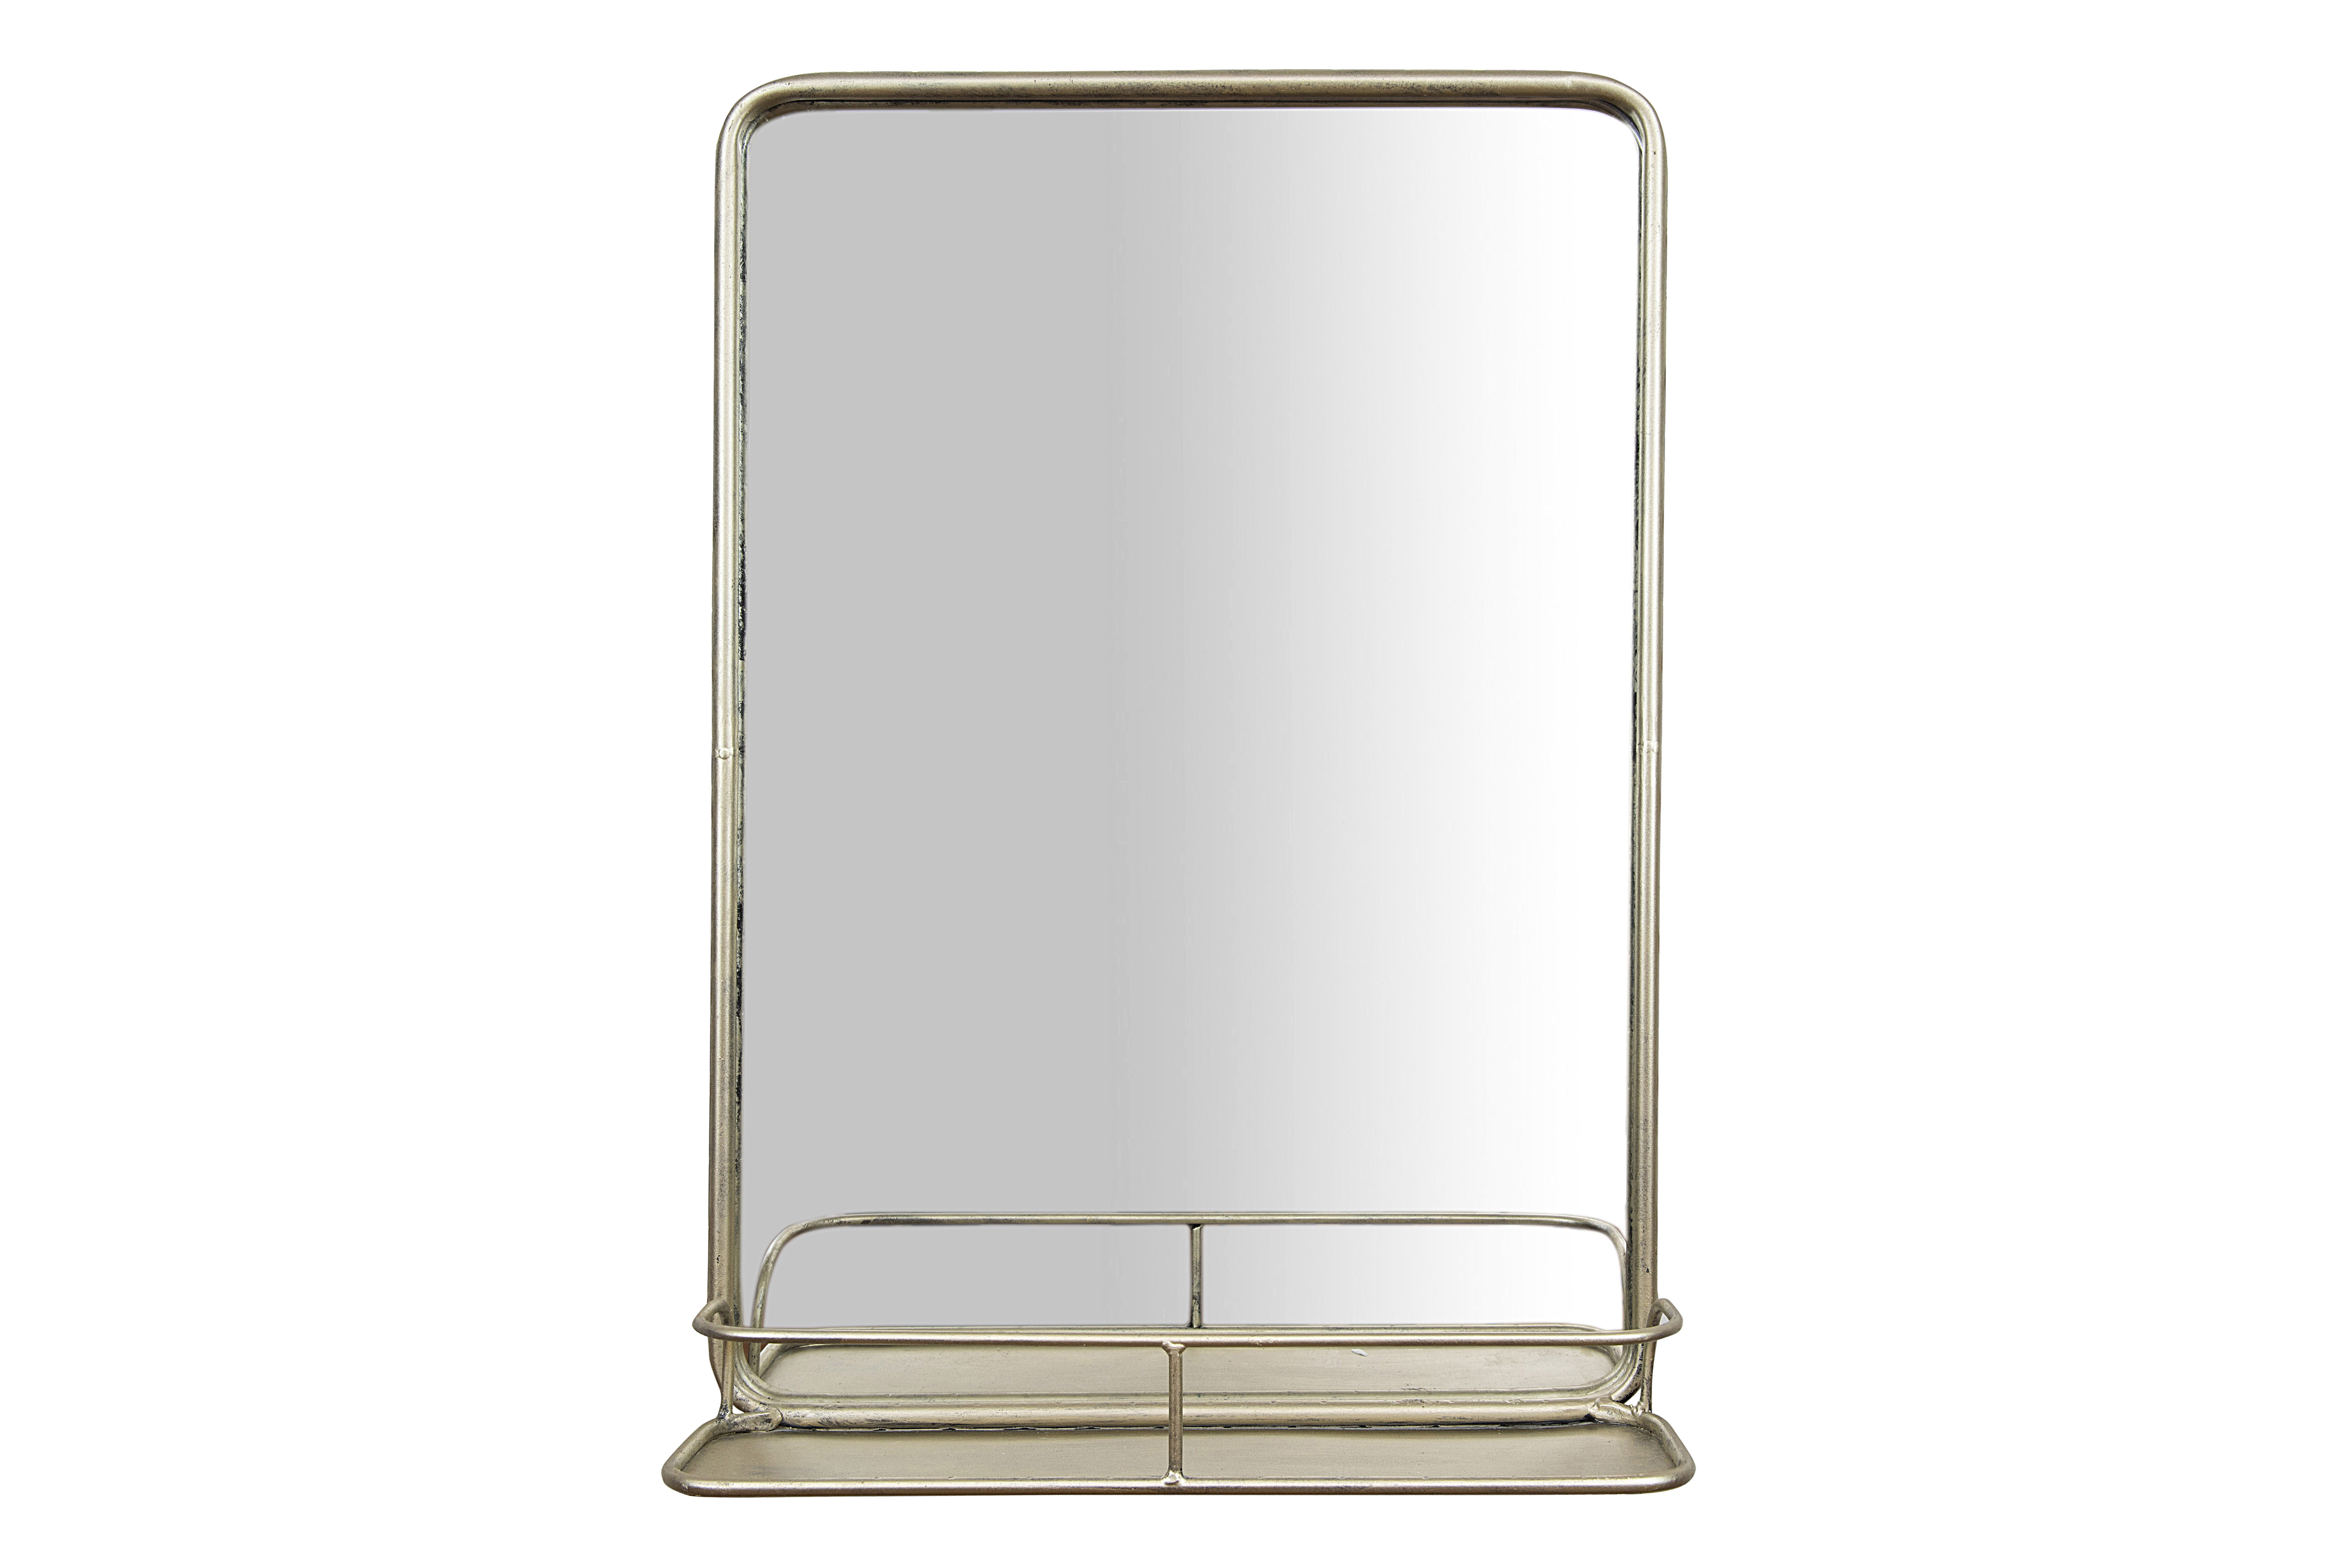 Wall Mirrors With Shelf With Regard To Best And Newest Diep Metal Wall Mirror With Shelf (View 17 of 20)